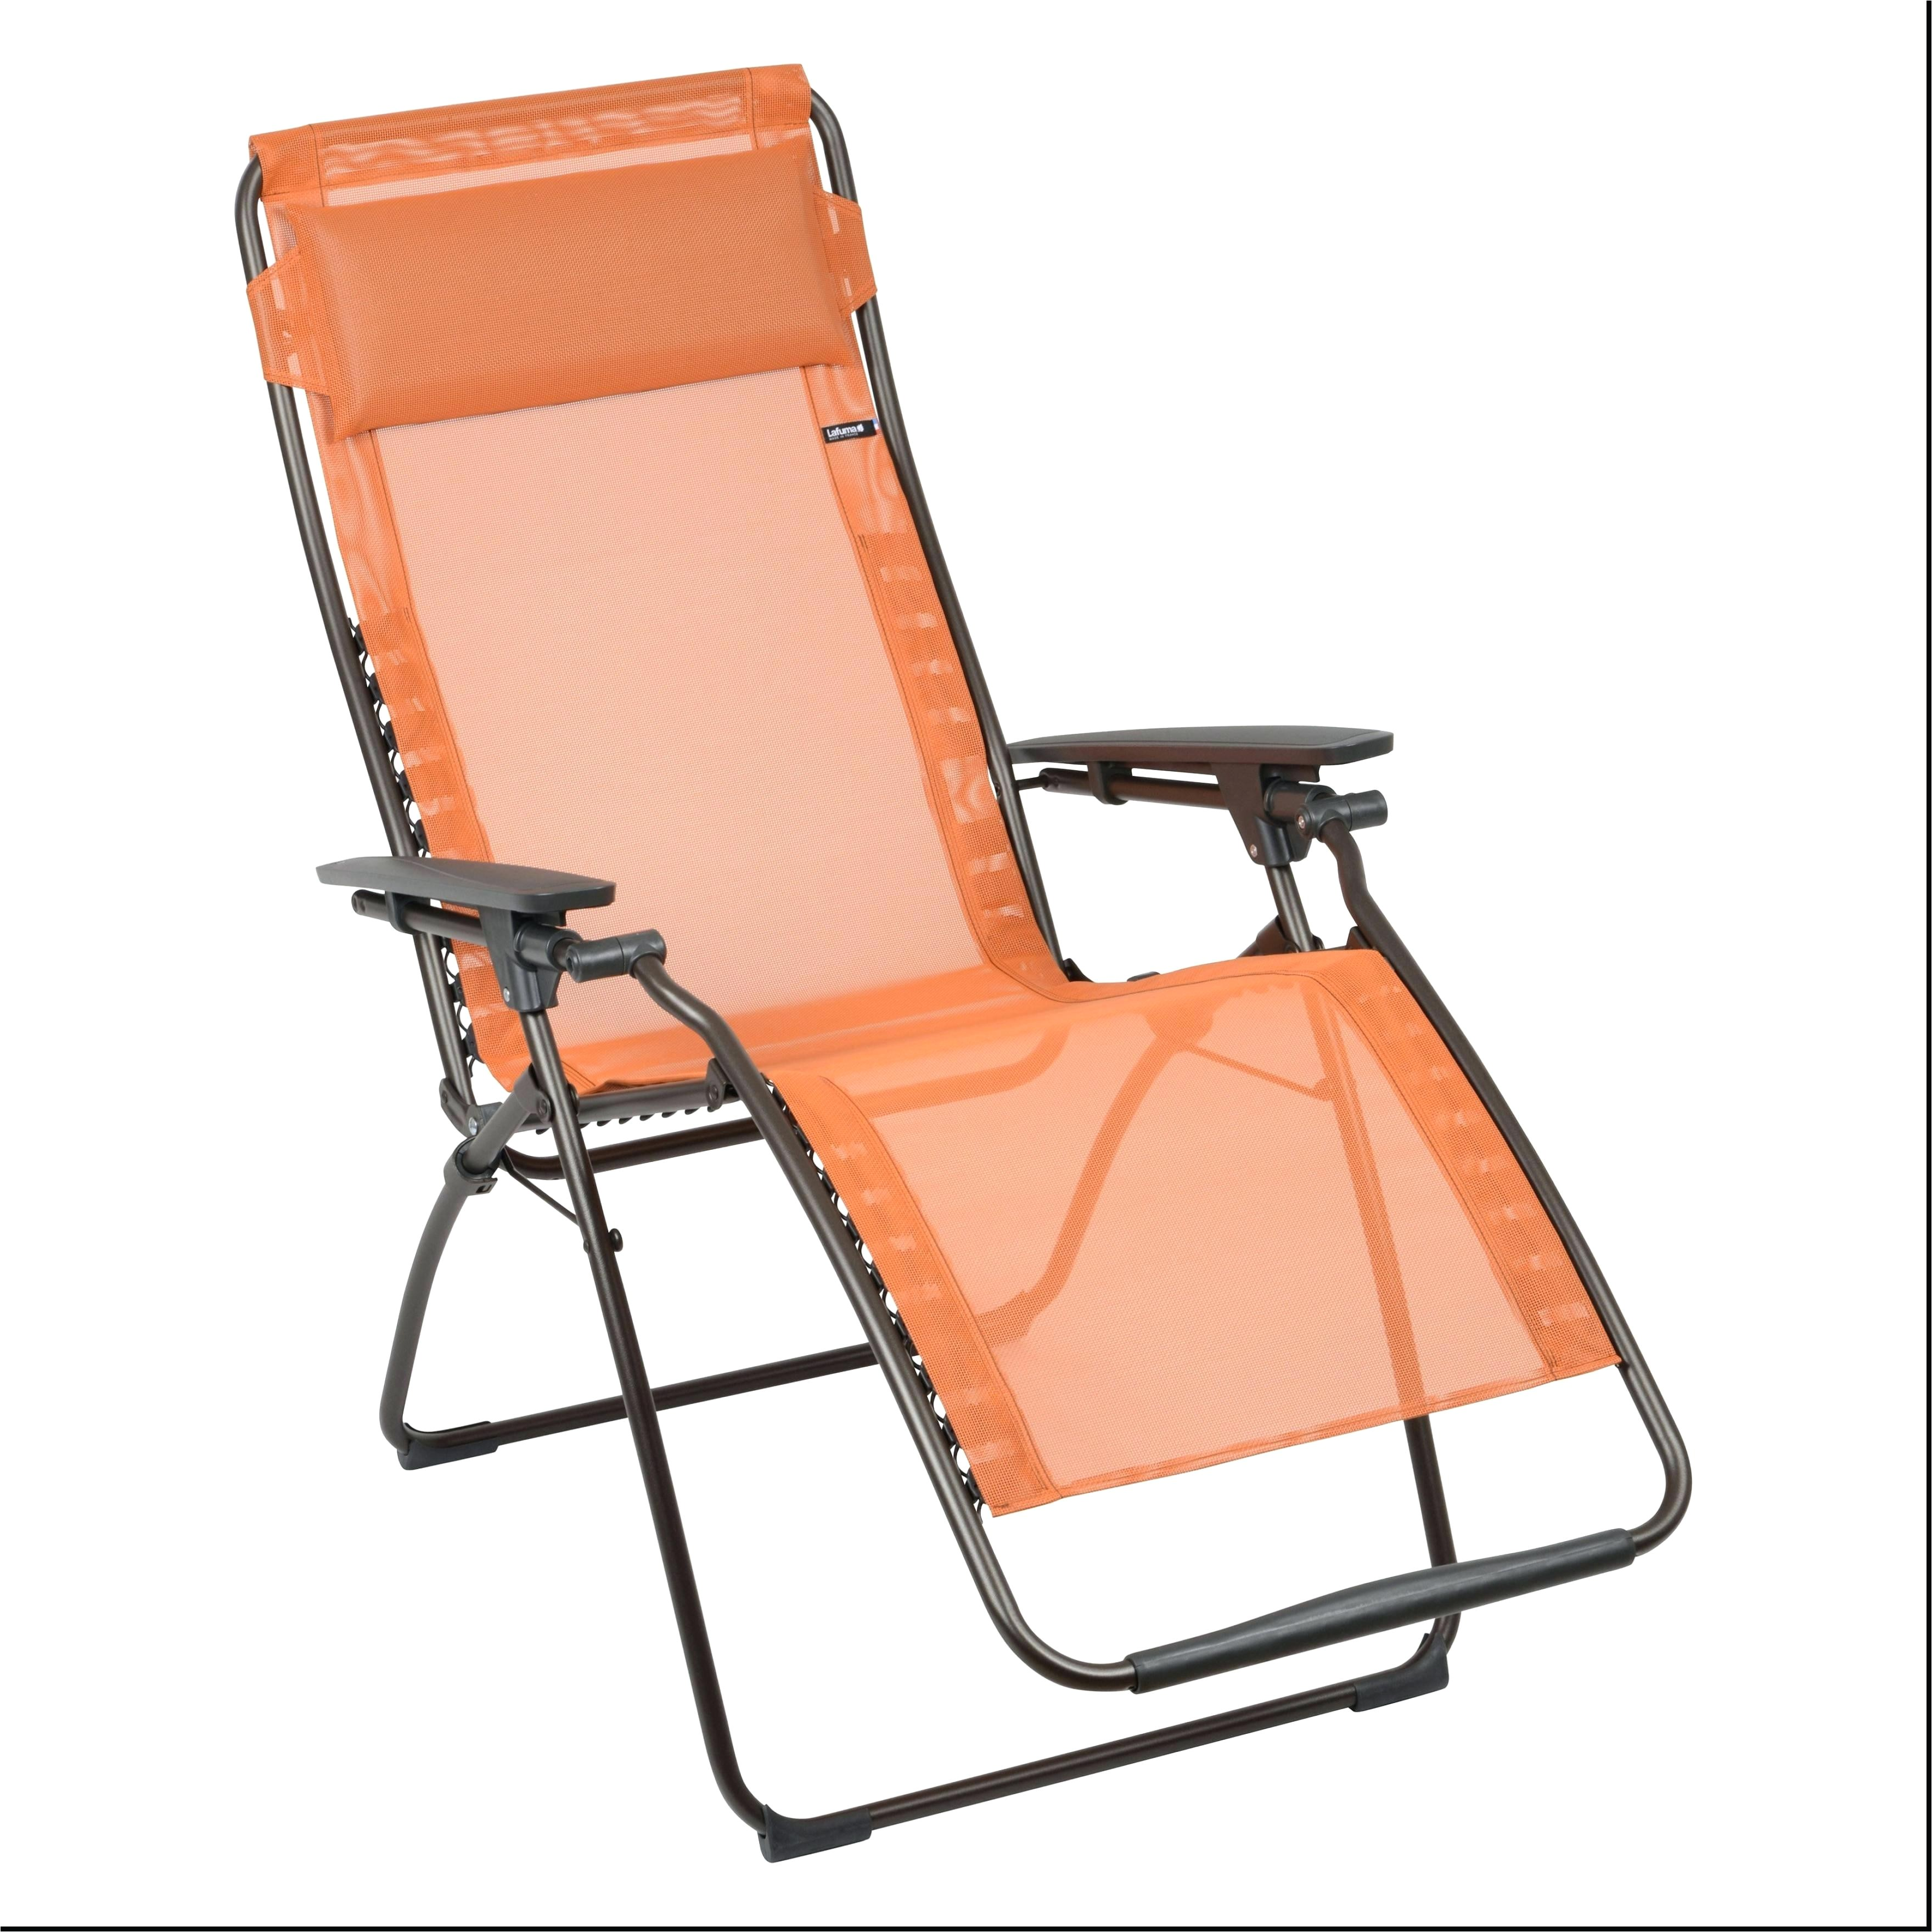 using comfy massage chair costco for charming home furniture ideas